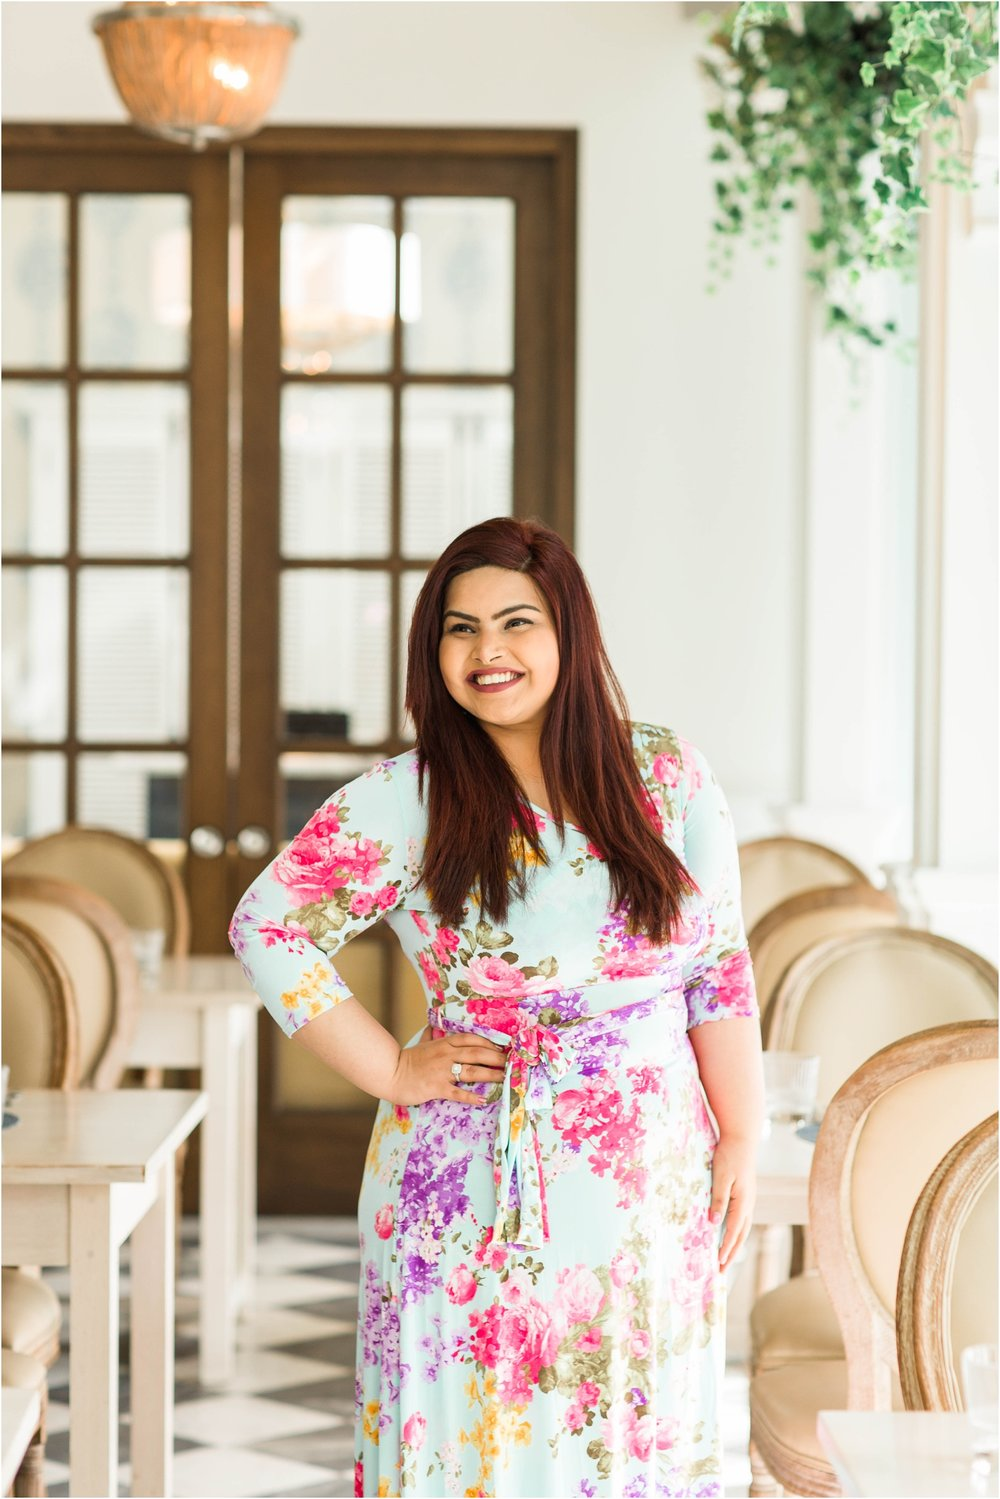 Colette-Grand-Cafe-Thompson-Hotel-Osgoode-Hall-Engagement-Session-Toronto-Mississauga-Brampton-Scarborough-GTA-Pakistani-Indian-Wedding-Engagement-Photographer-Photography_0006.jpg